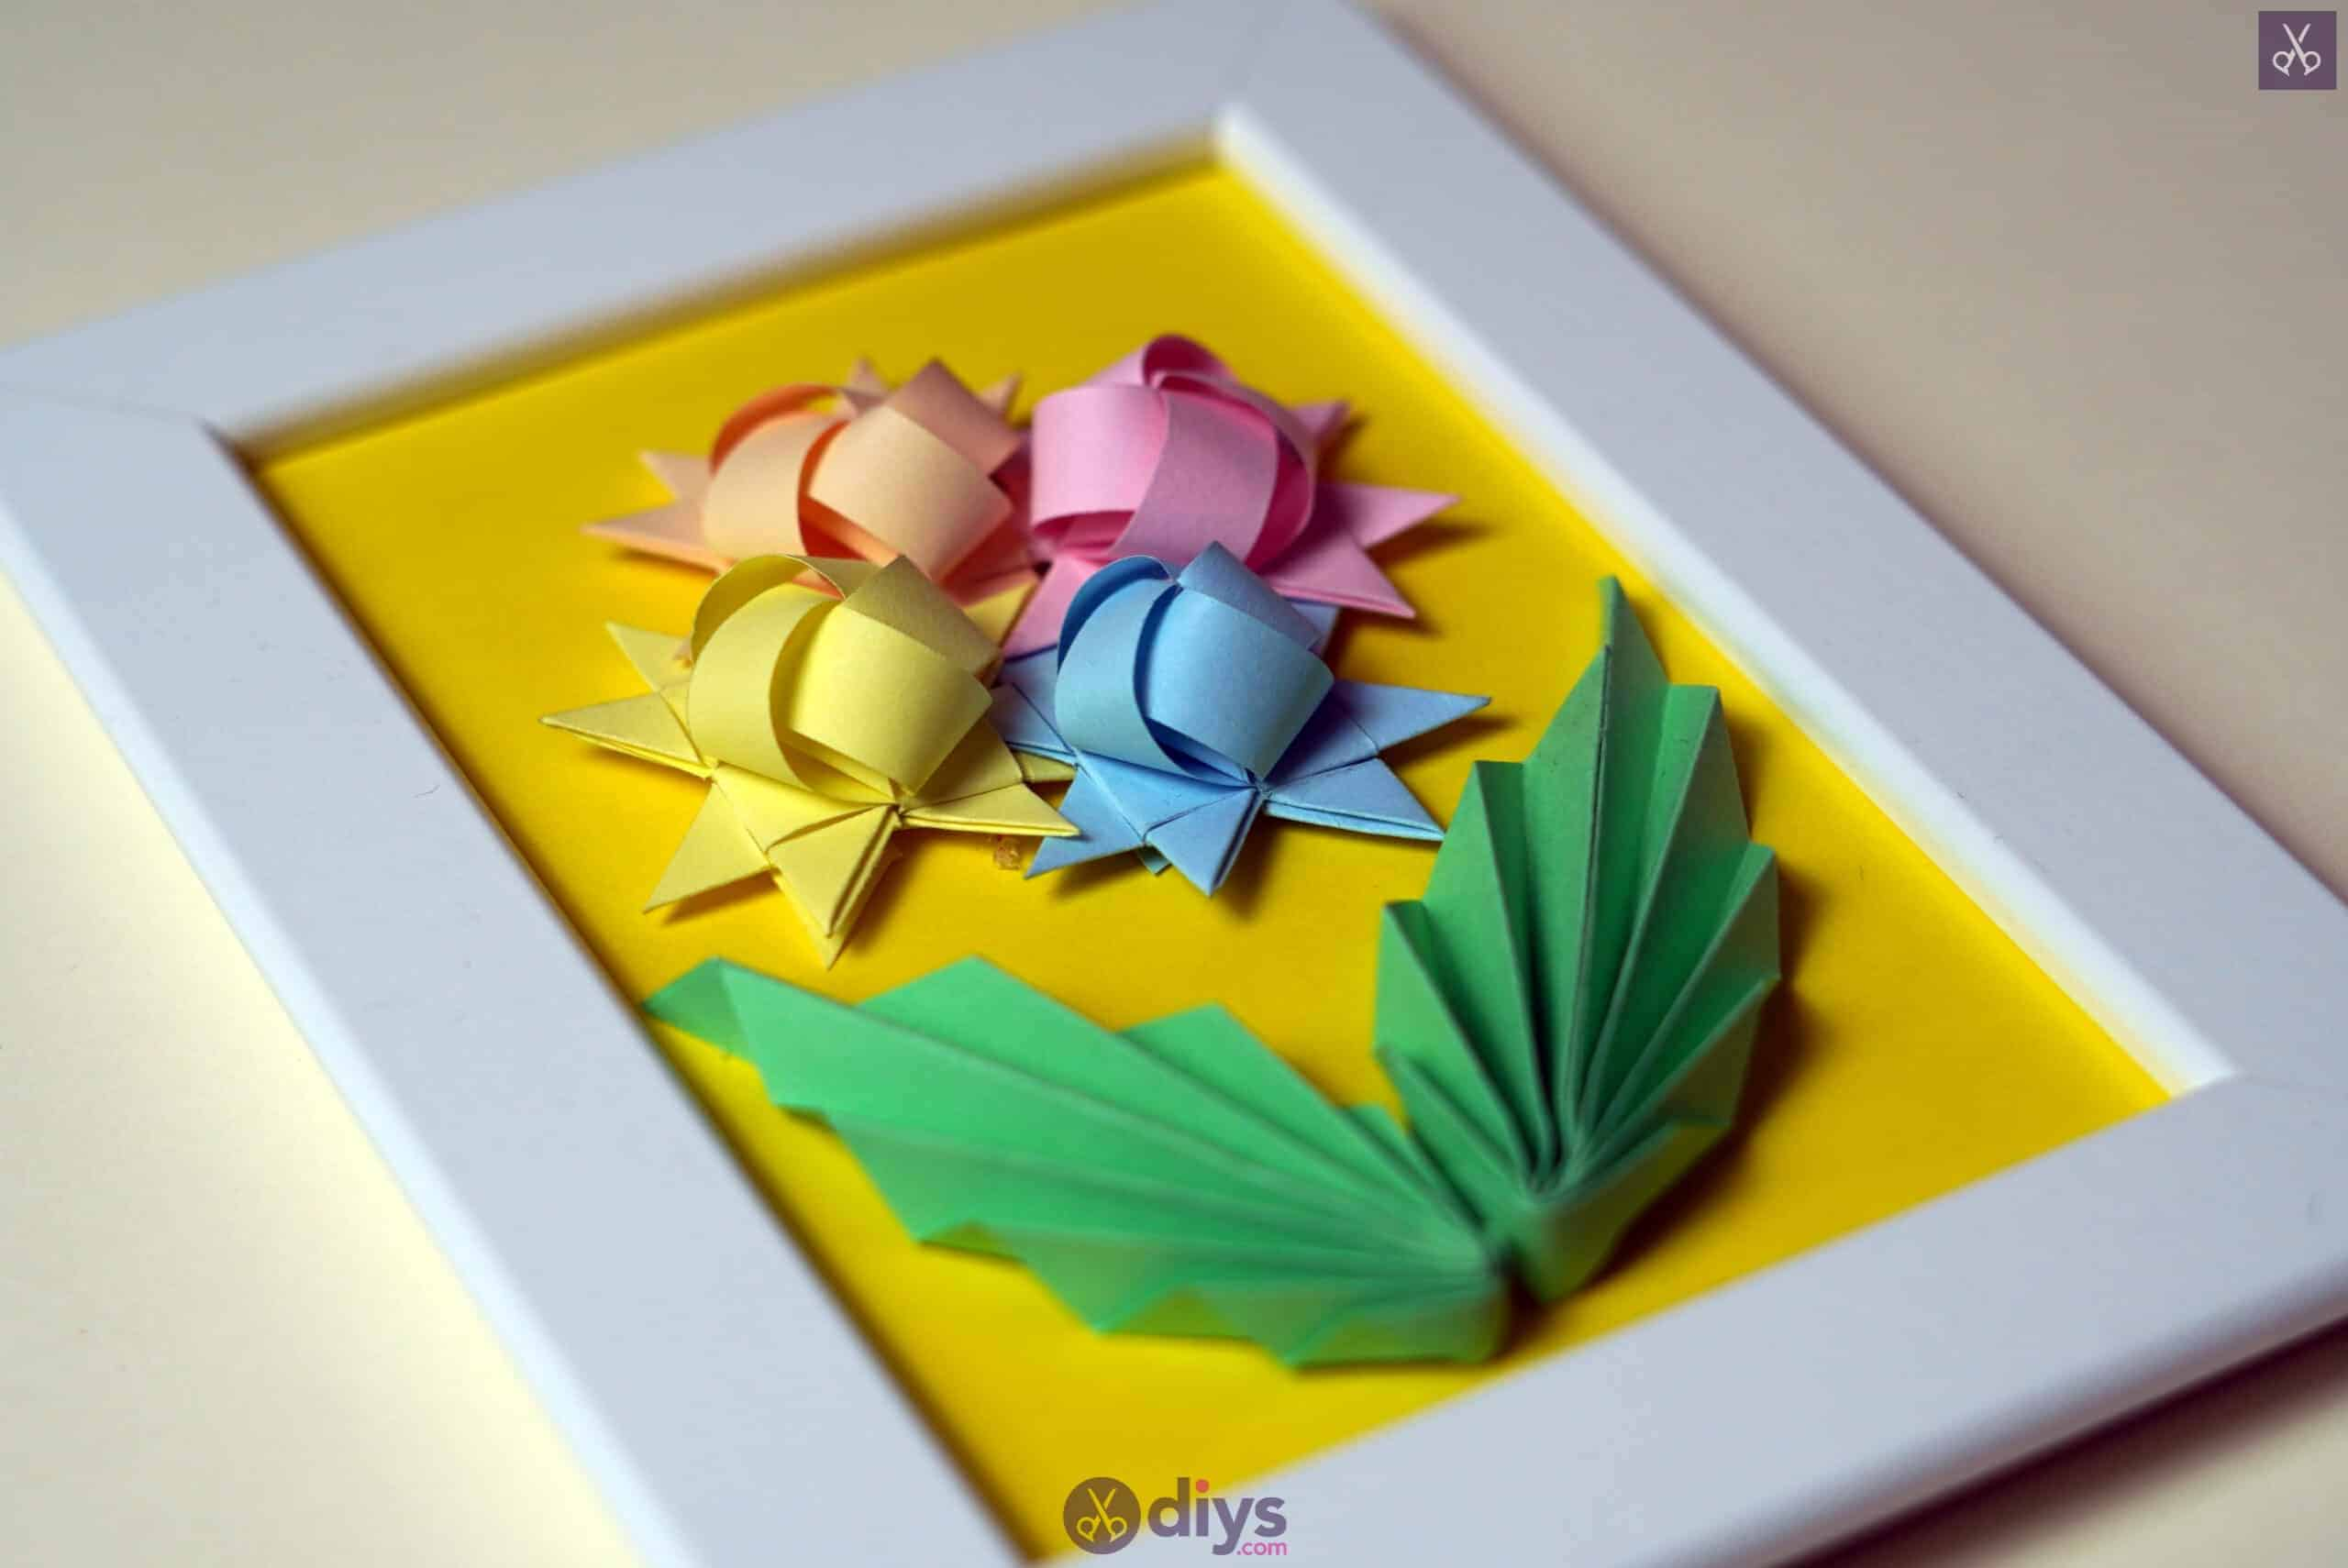 Diy origami flower art step 12ro